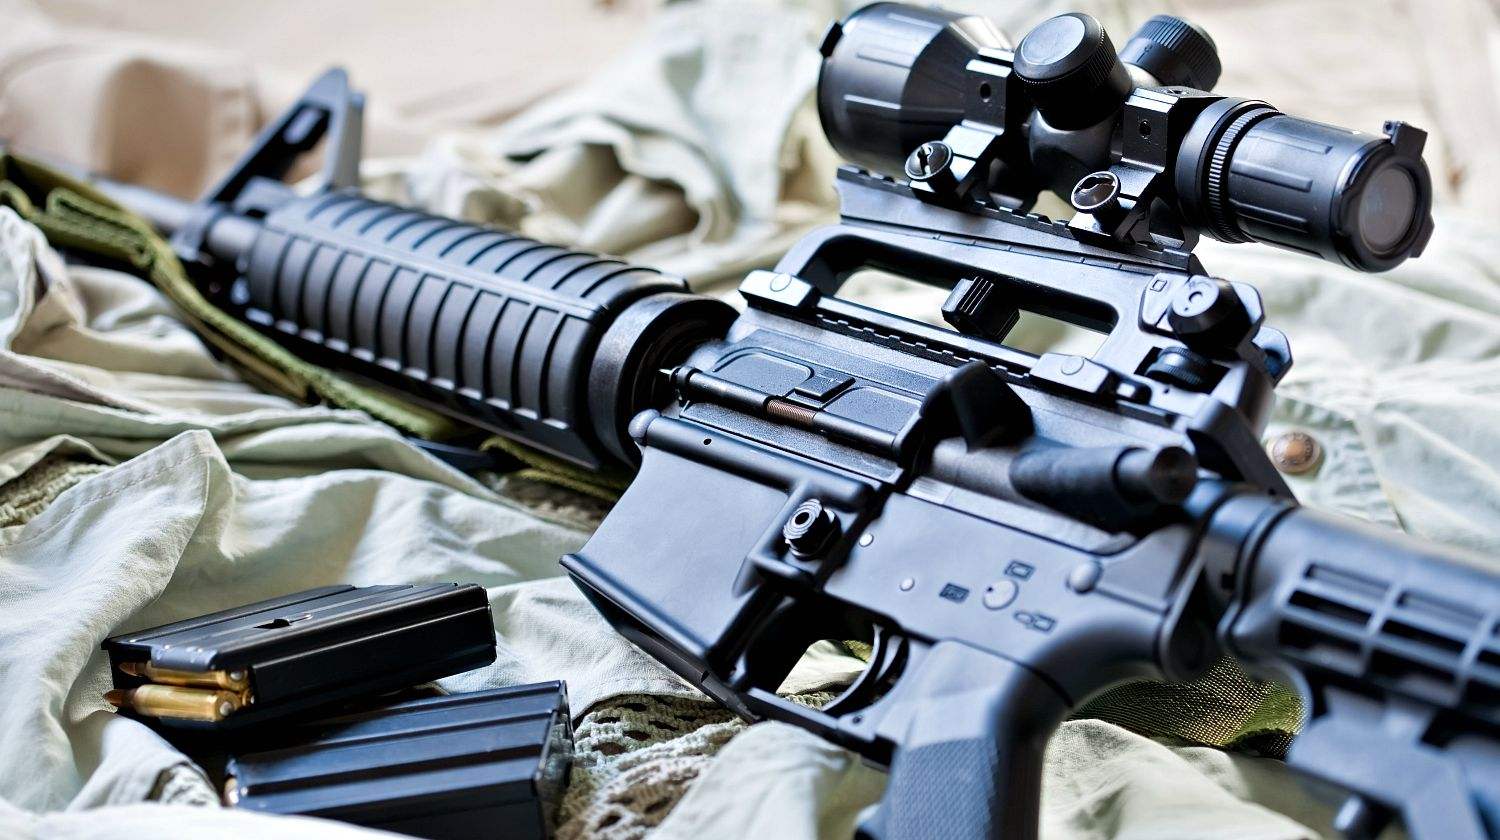 hight resolution of feature ar 15 rifle and magazines with ammo ar 15 basics